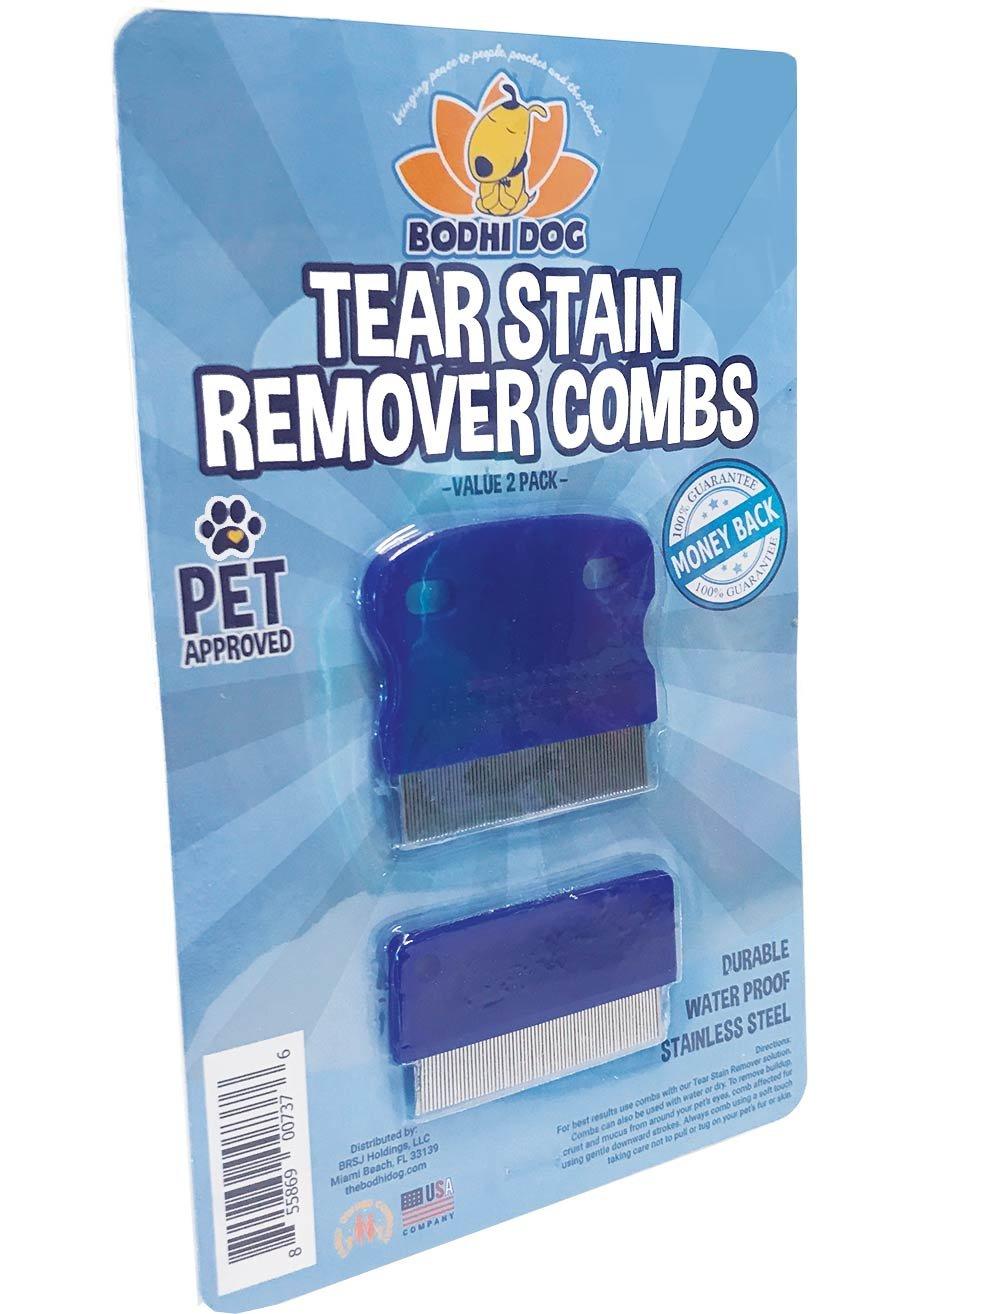 Tear Eye Stain Remover Combs | Set of 2 | Clean and Remove Residue Dirt Buildup